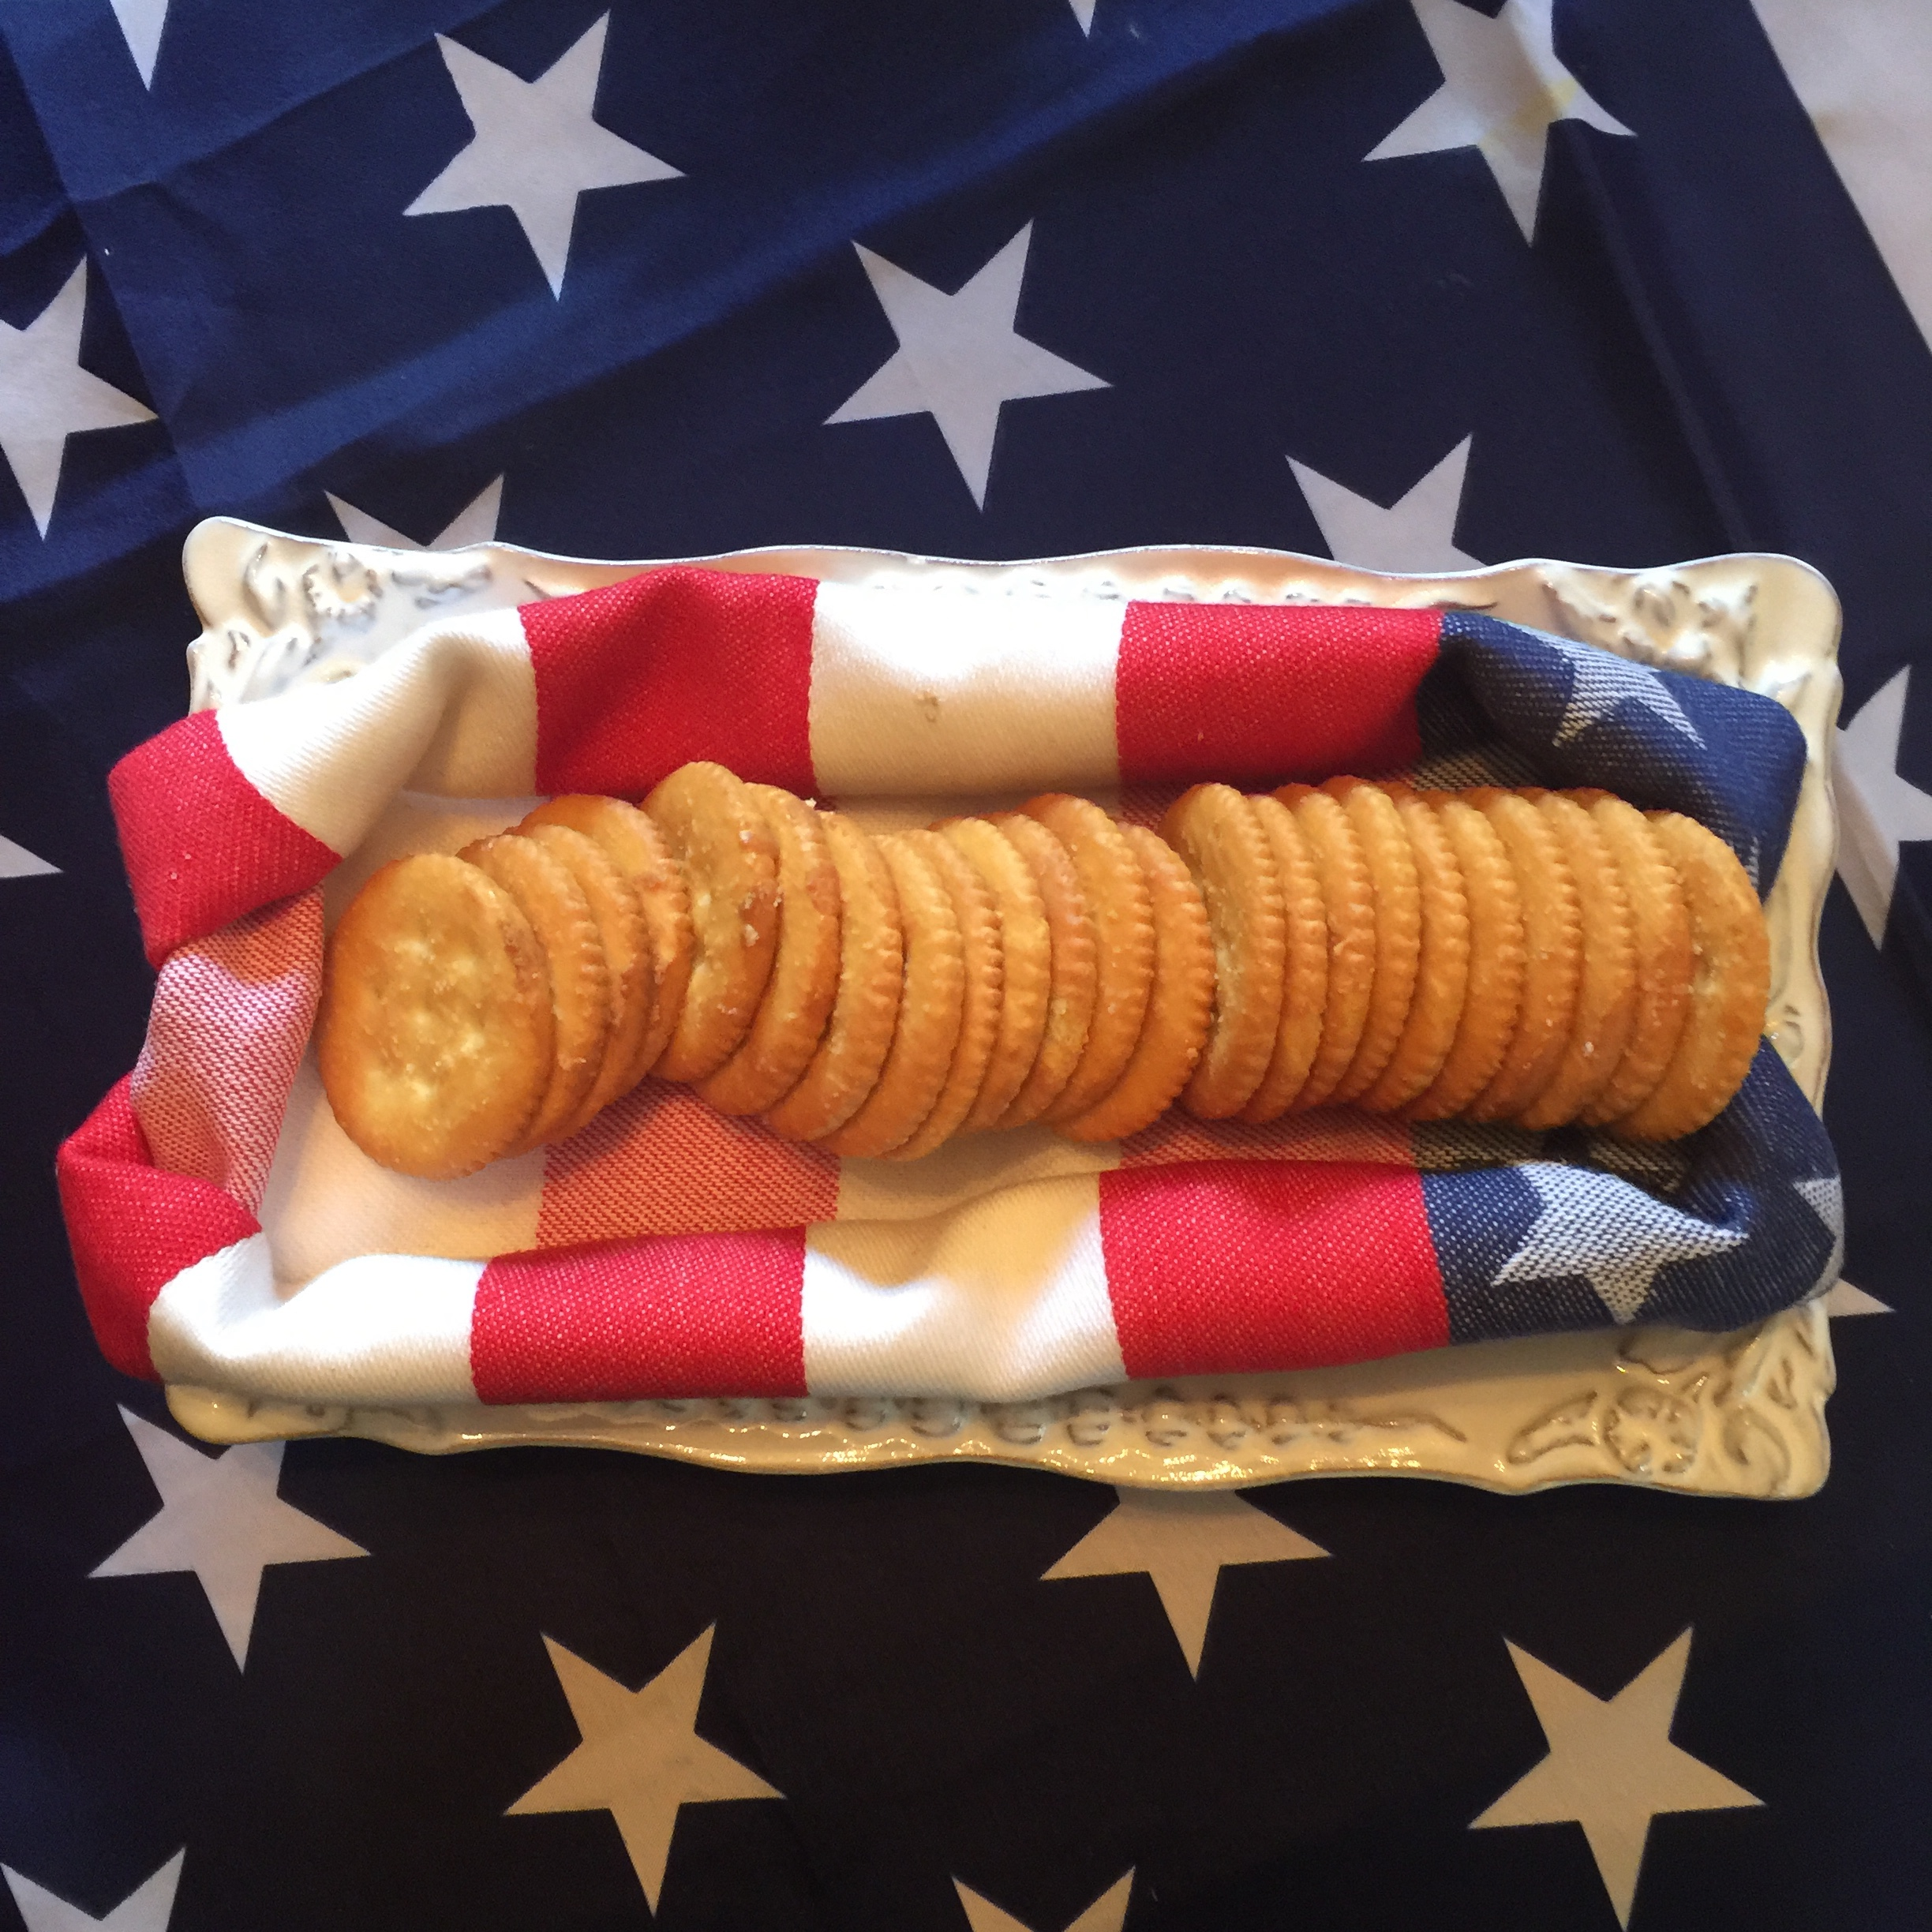 July 4th table setting – time to party!